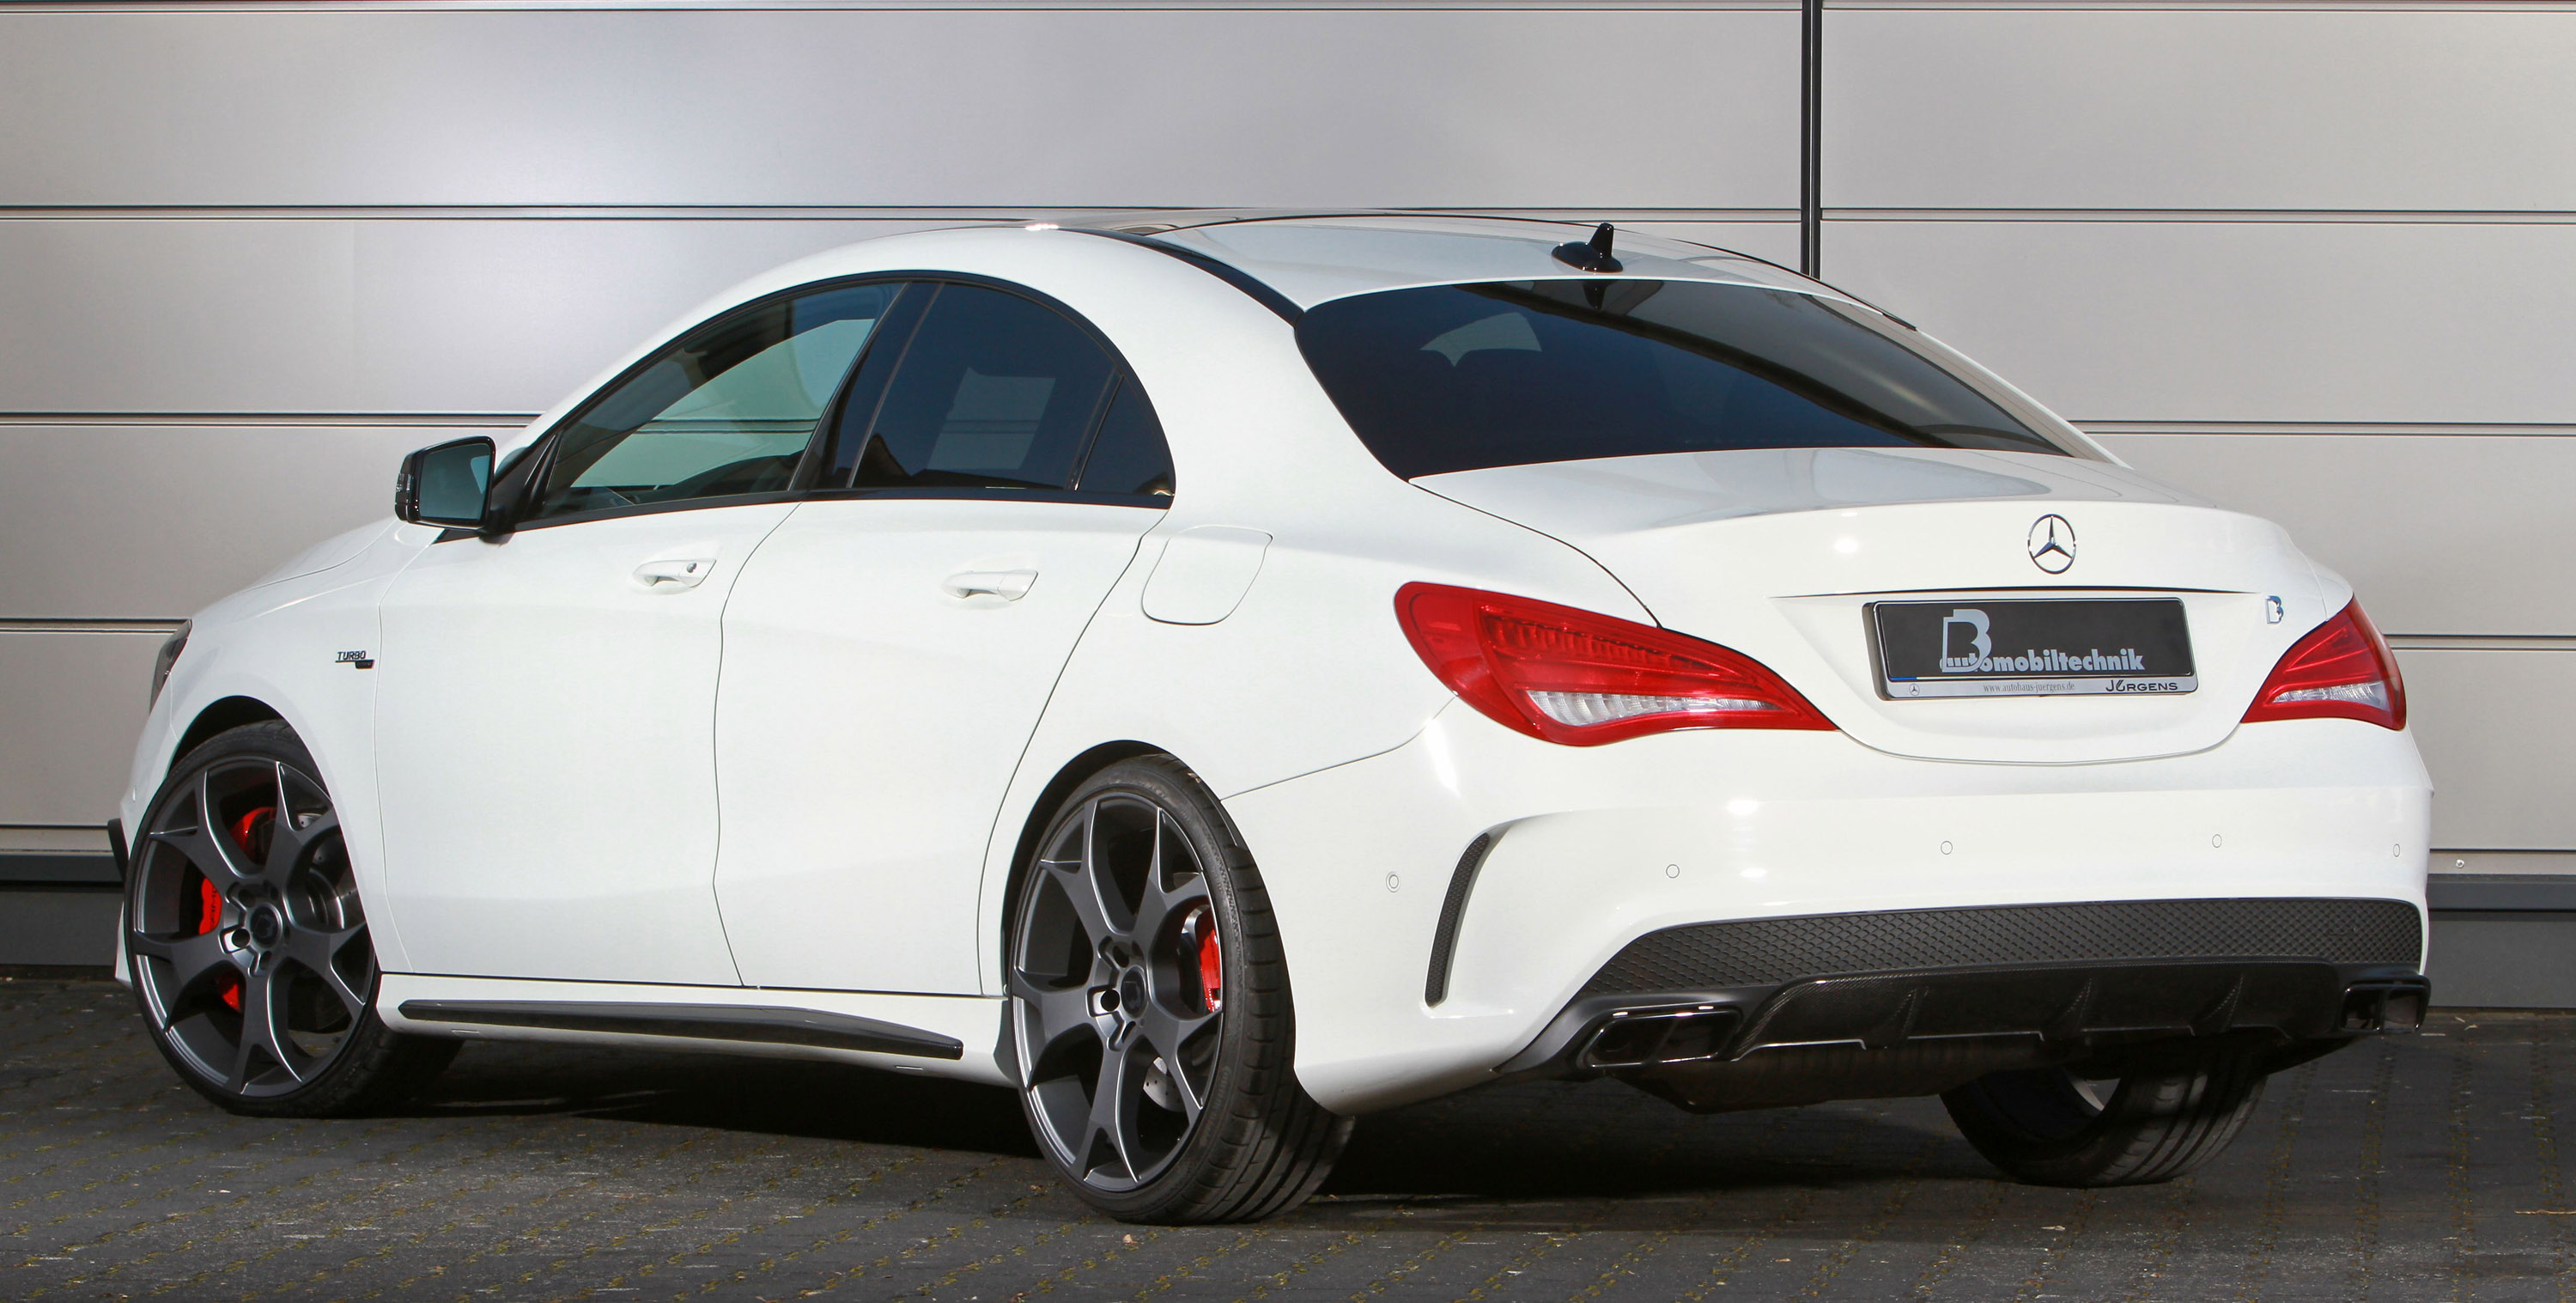 Mercedes Cla Shooting Brake Amg >> B&B Mercedes-Benz CLA 45 AMG is Capable of up to 450 HP/580 Nm